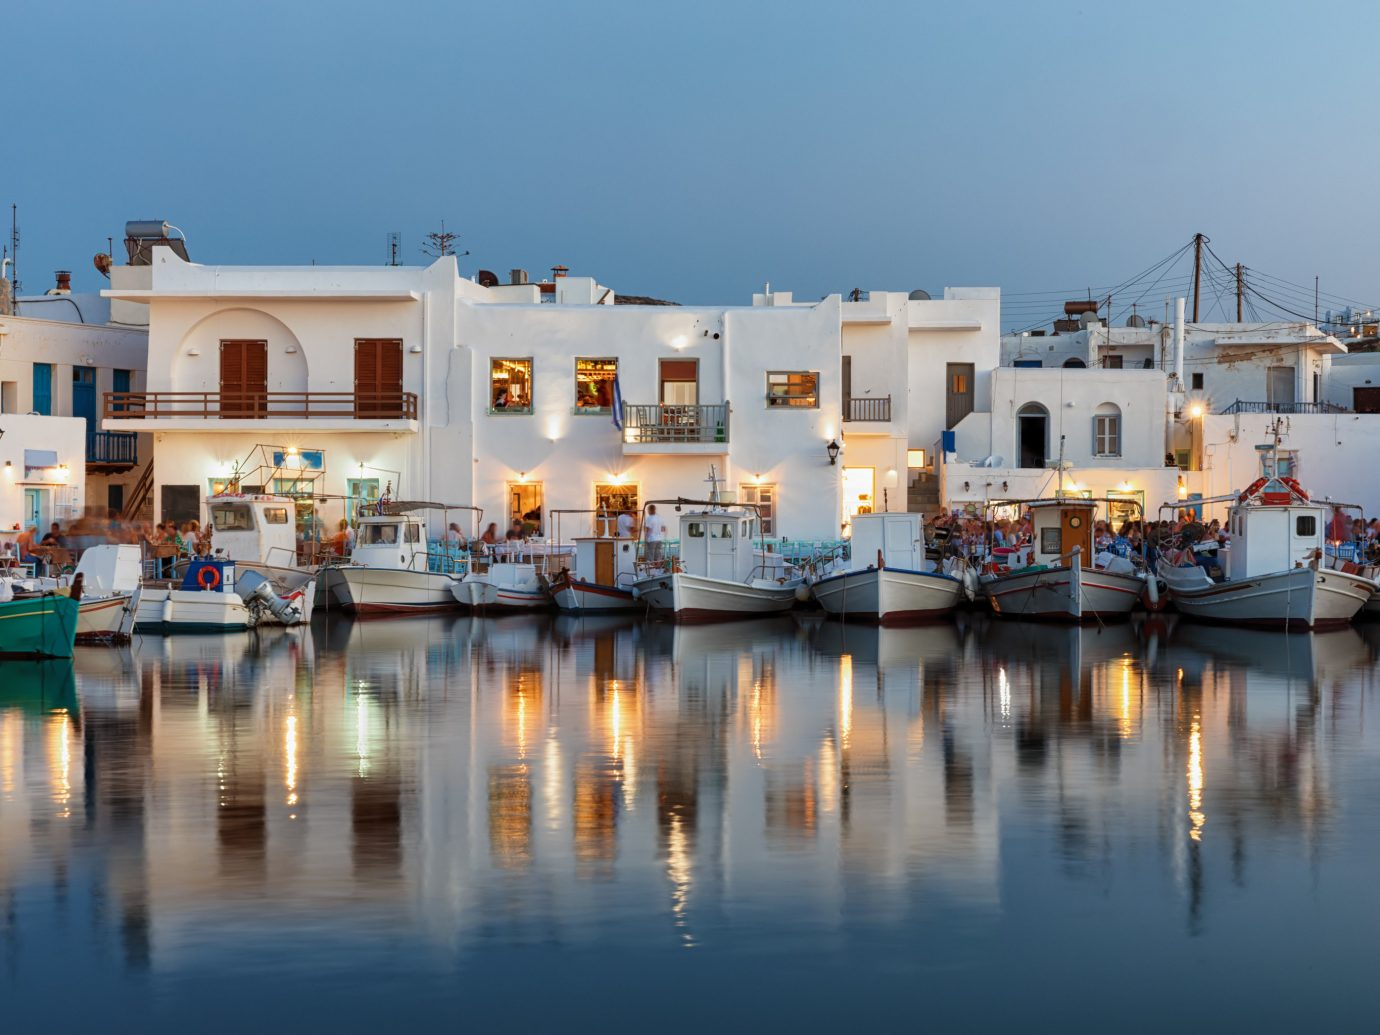 harbor at night in Naoussa, Greece